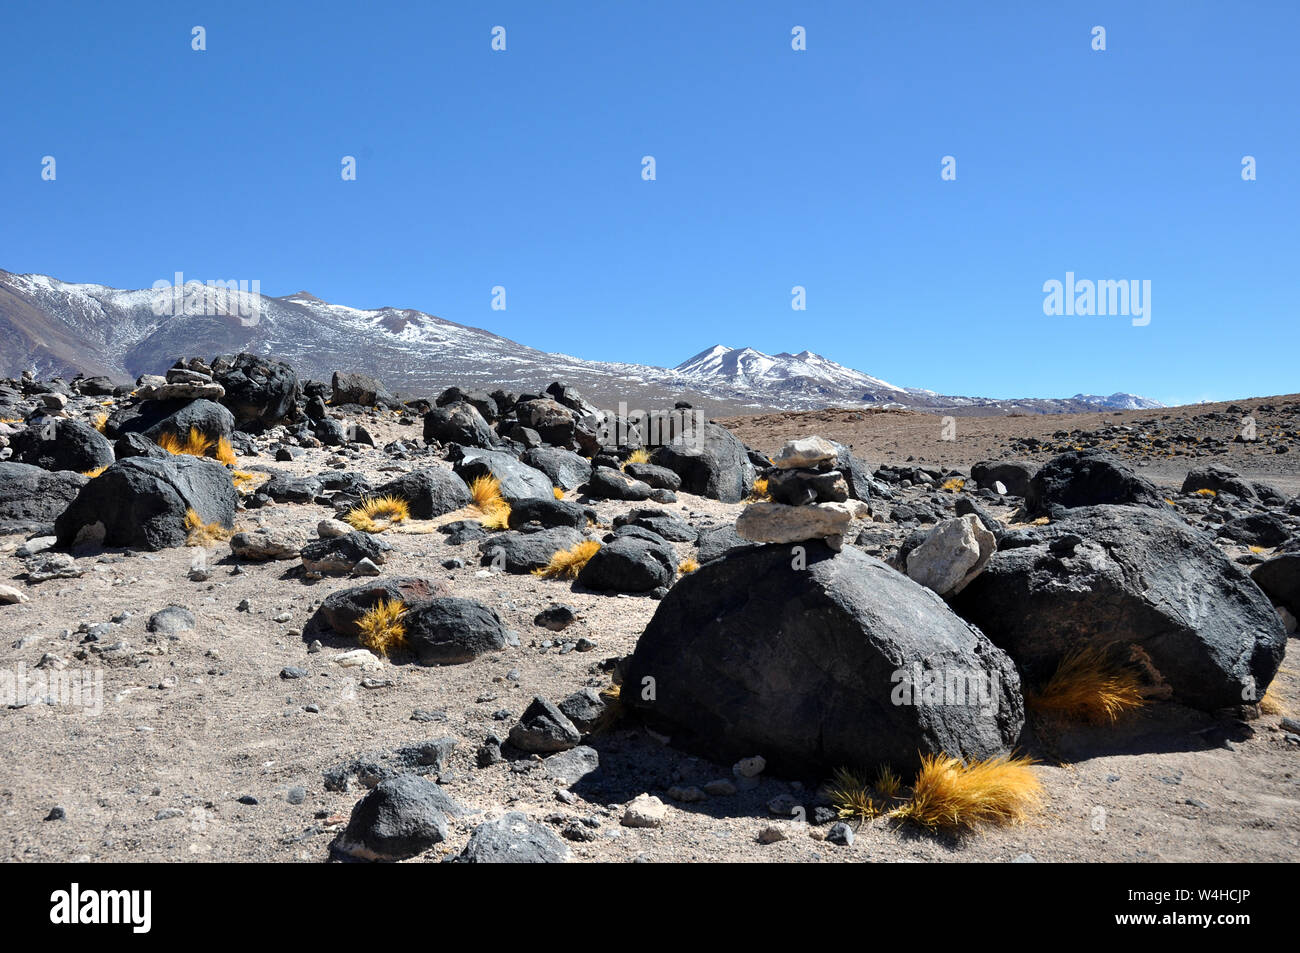 Bolivian Lagunas In The Andes Mountains Region Over 4000 Meters Above Sealevel Stock Photo 260997262 Alamy